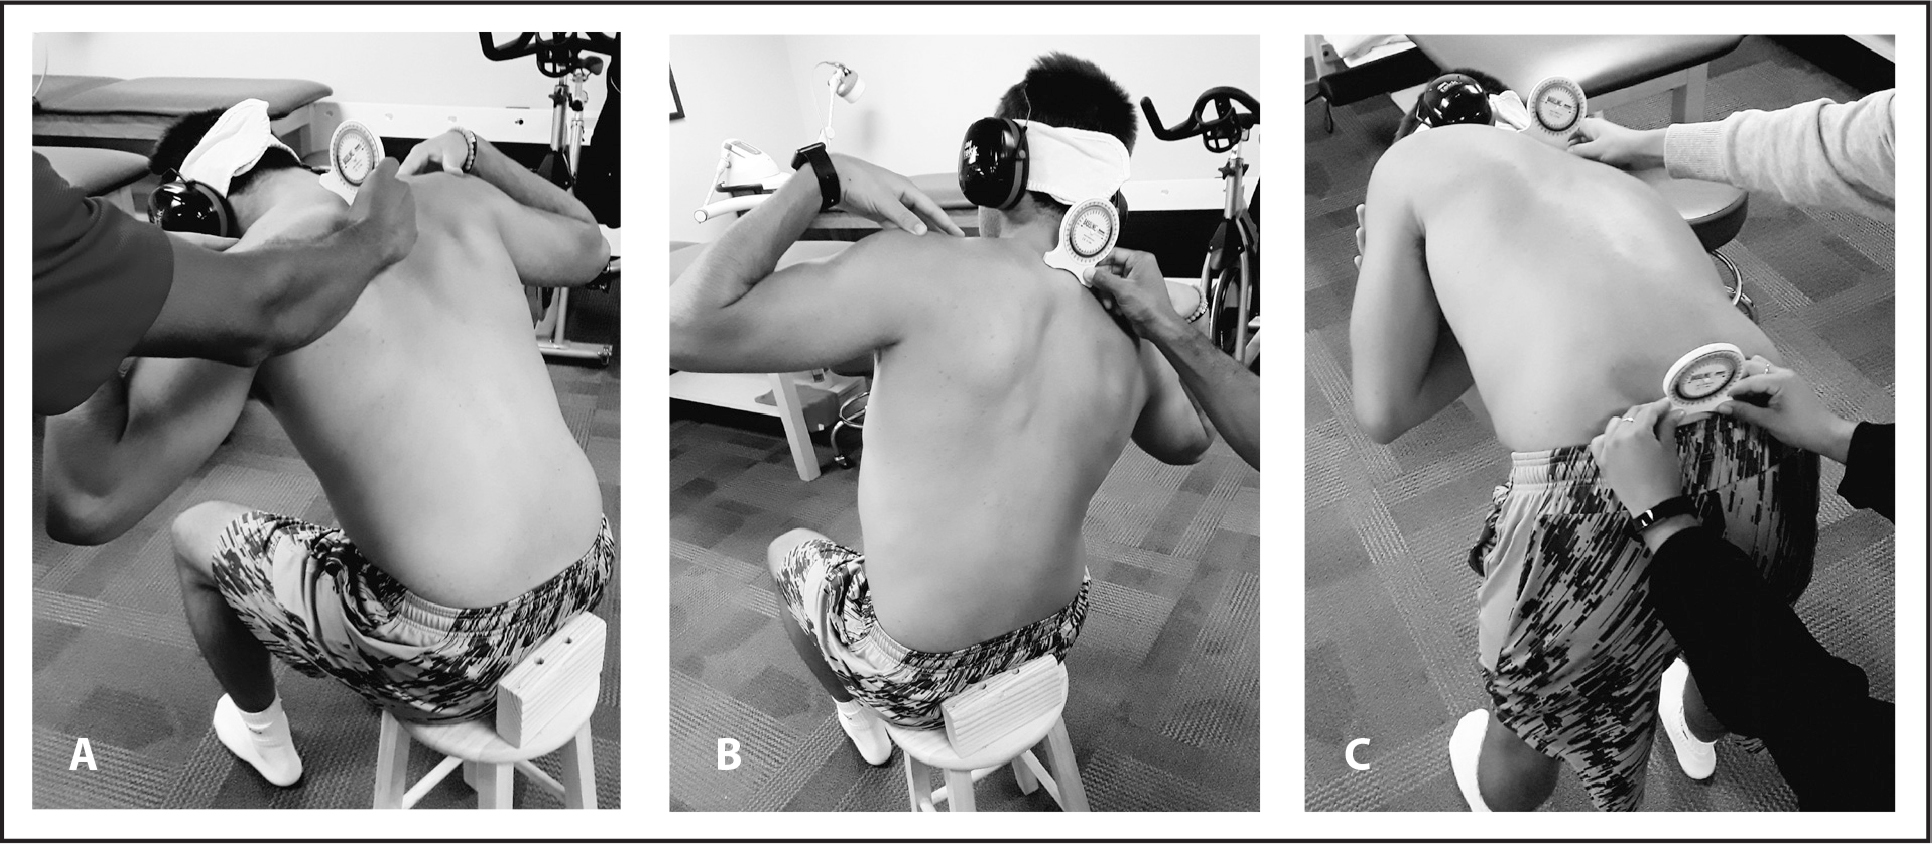 Measuring thoracolumbar active repositioning error for (A) flexion, (B) side-bending, and (C) rotation.